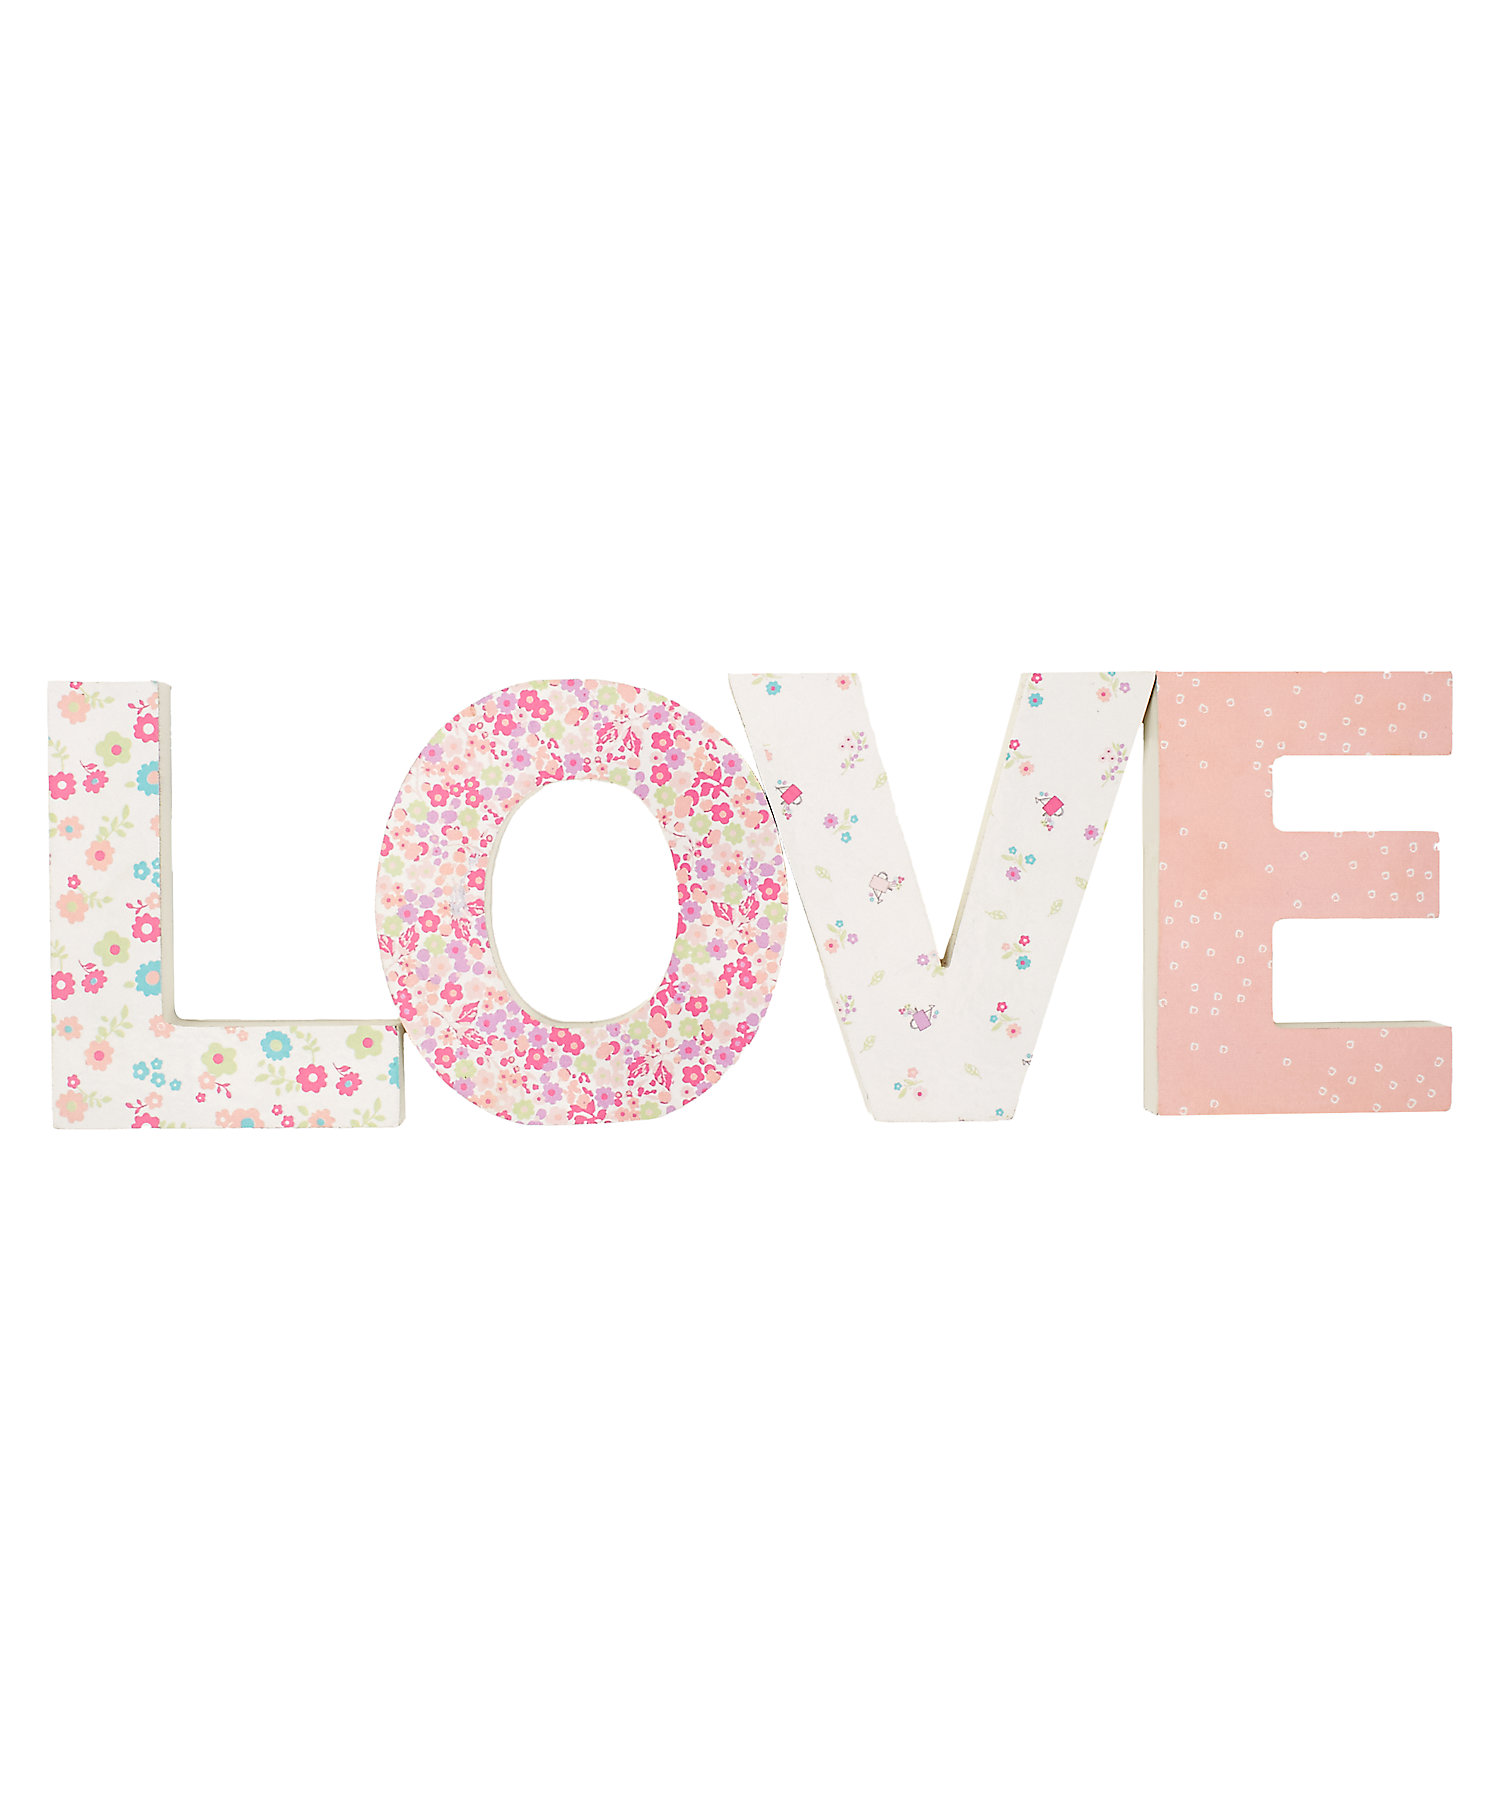 Mothercare | Mothercare My Little Garden Love Letters Pink